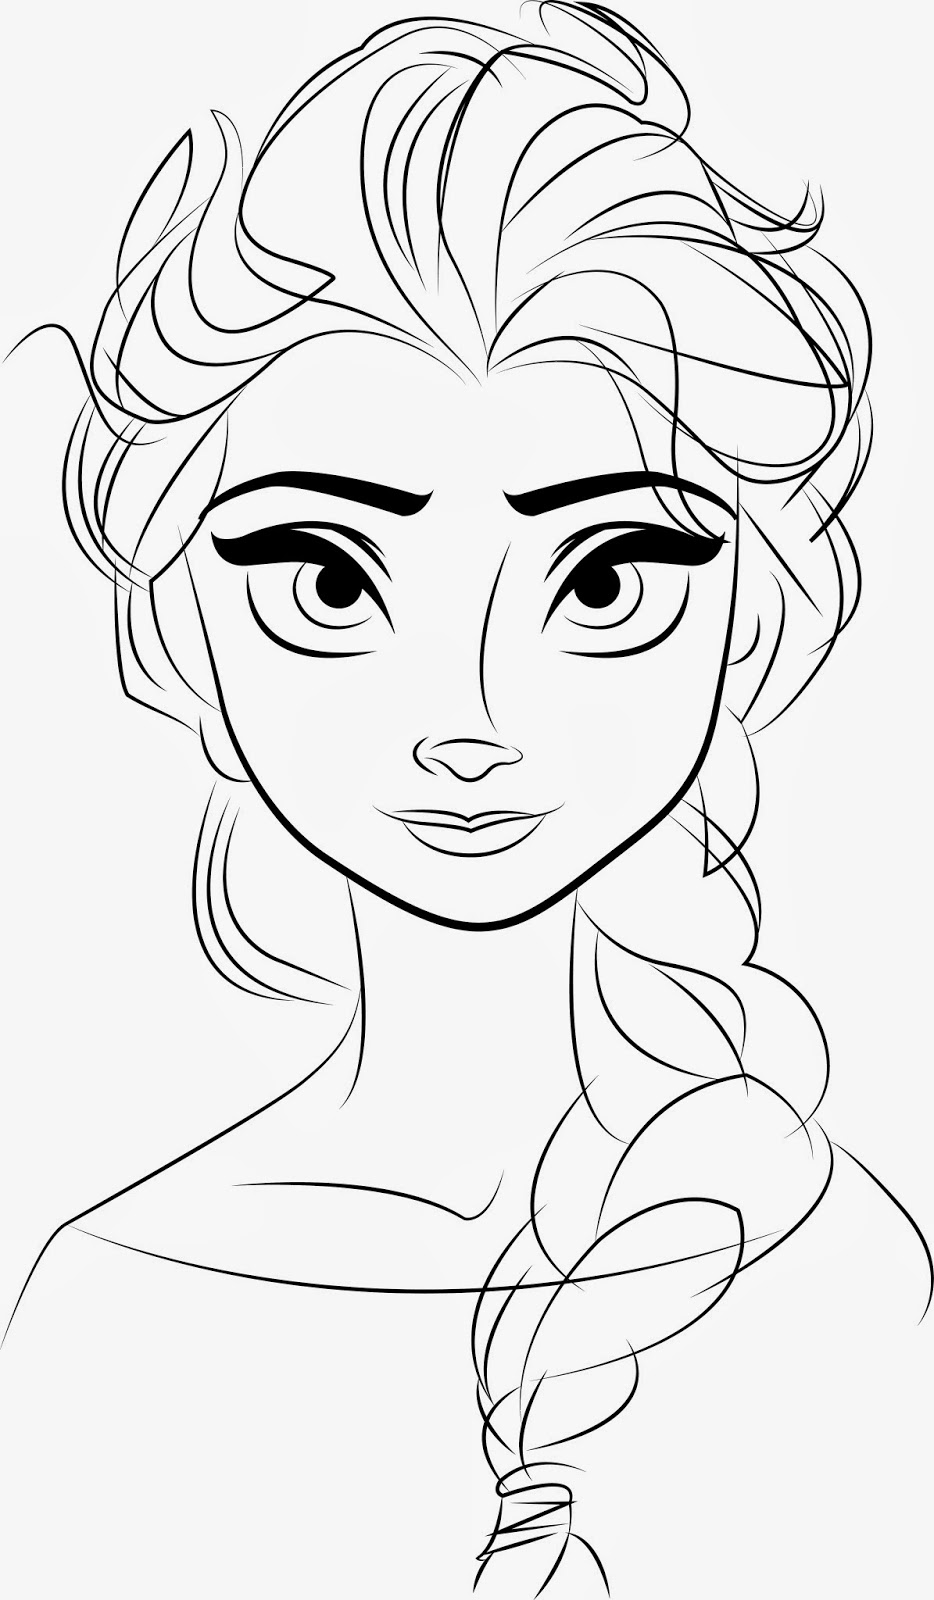 Elsa Colouring Pages To Print - Free Coloring Page